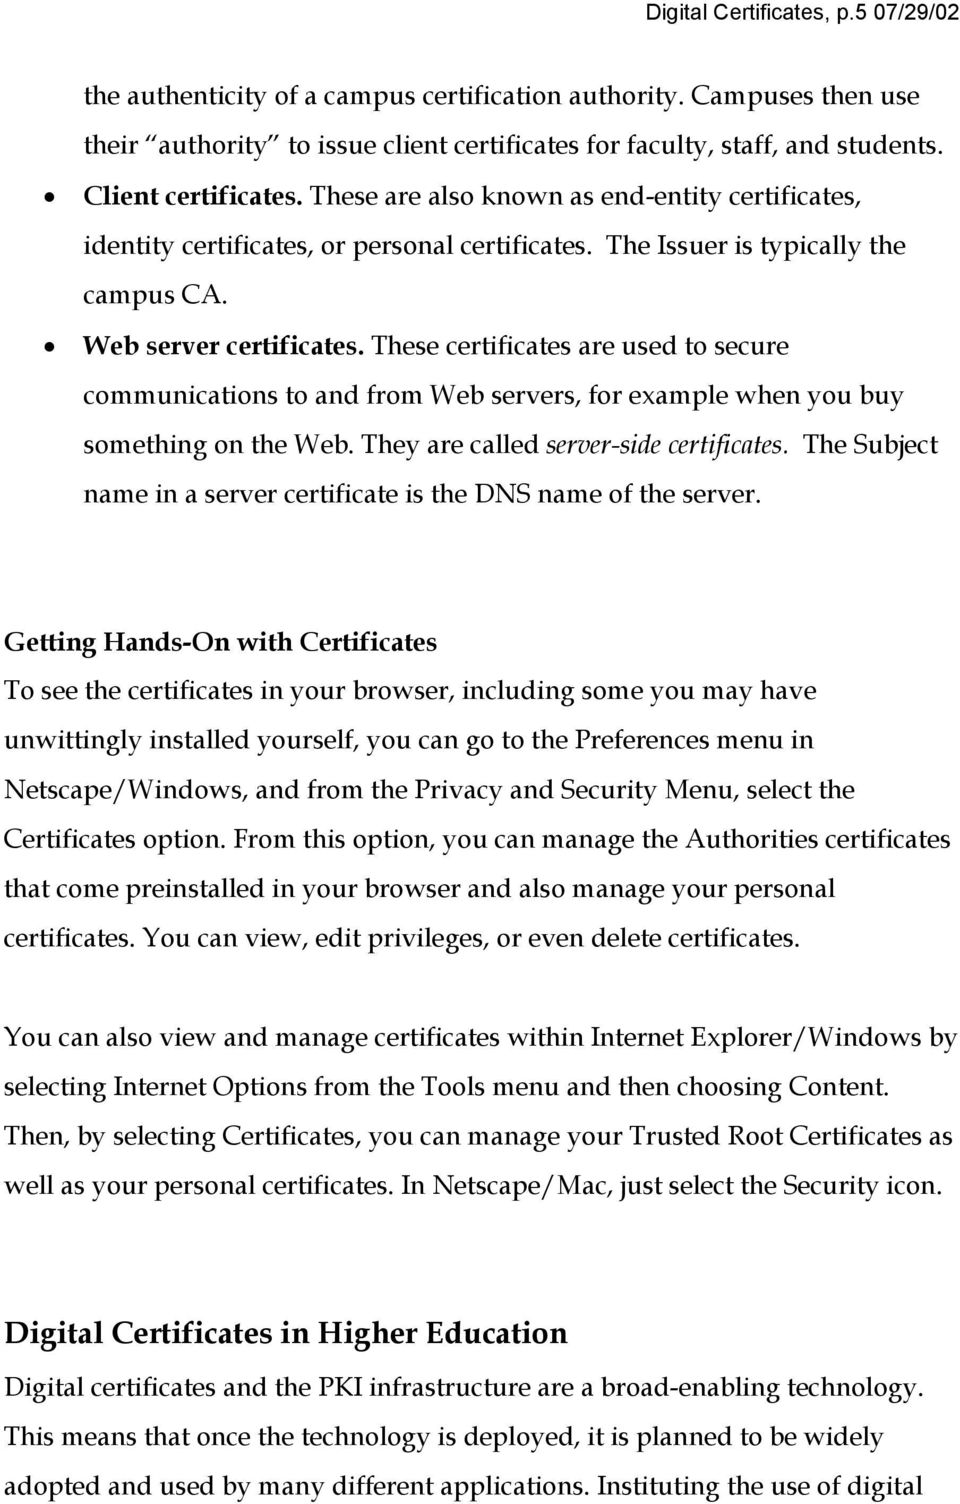 These certificates are used to secure communications to and from Web servers, for example when you buy something on the Web. They are called server-side certificates.